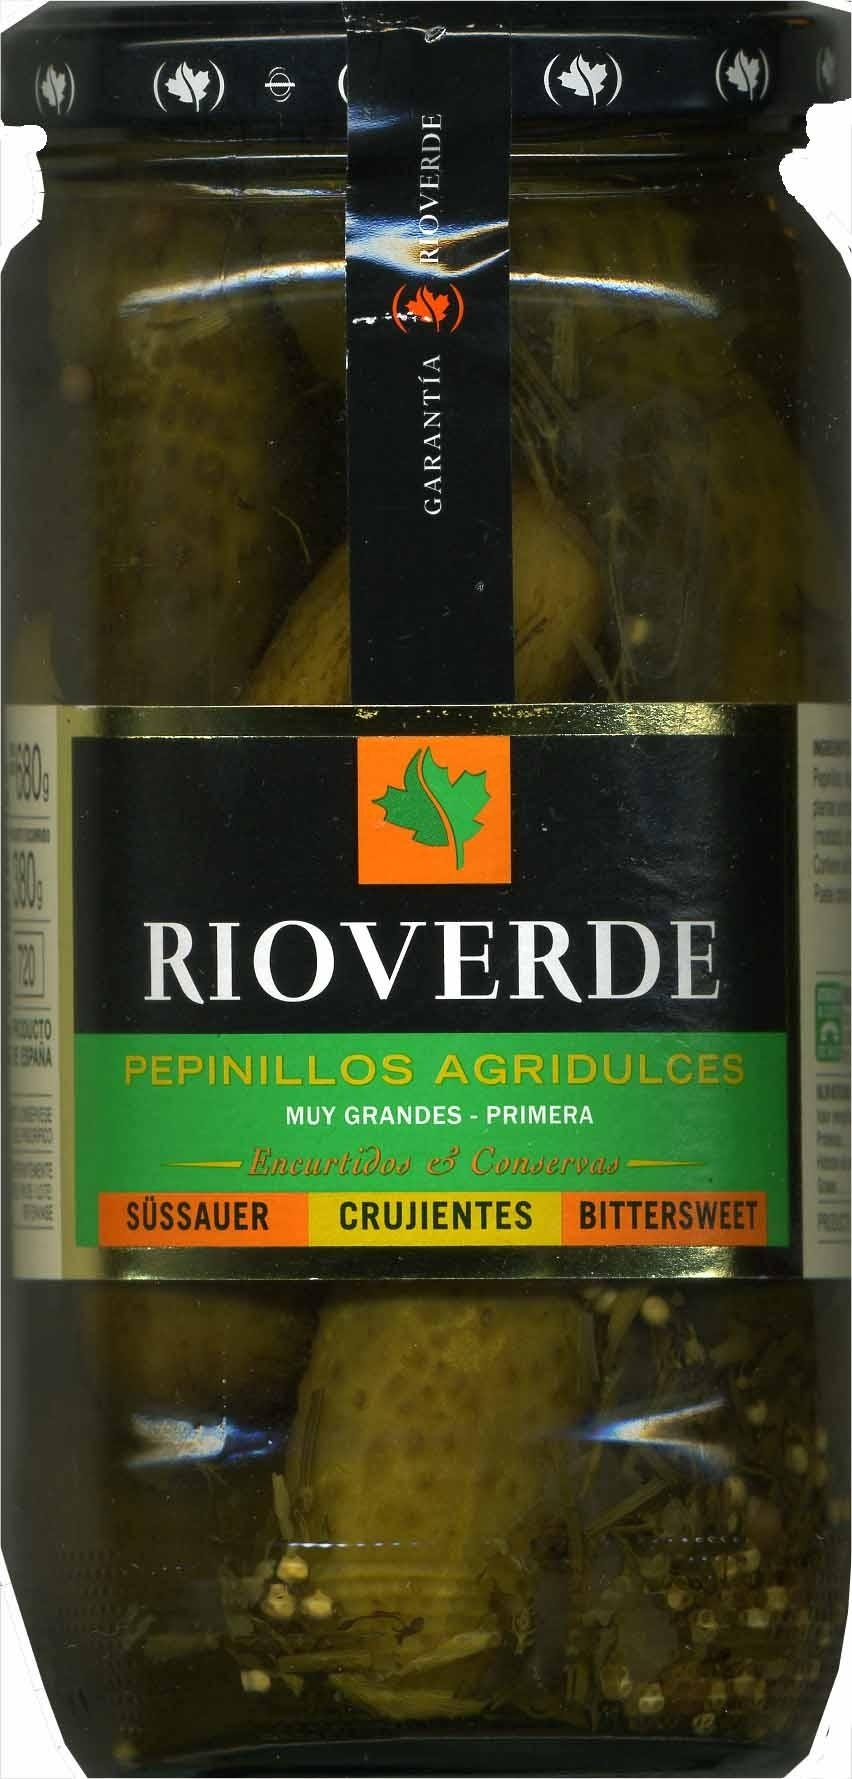 Pepinillos Agridulces Rioverde - Product - es